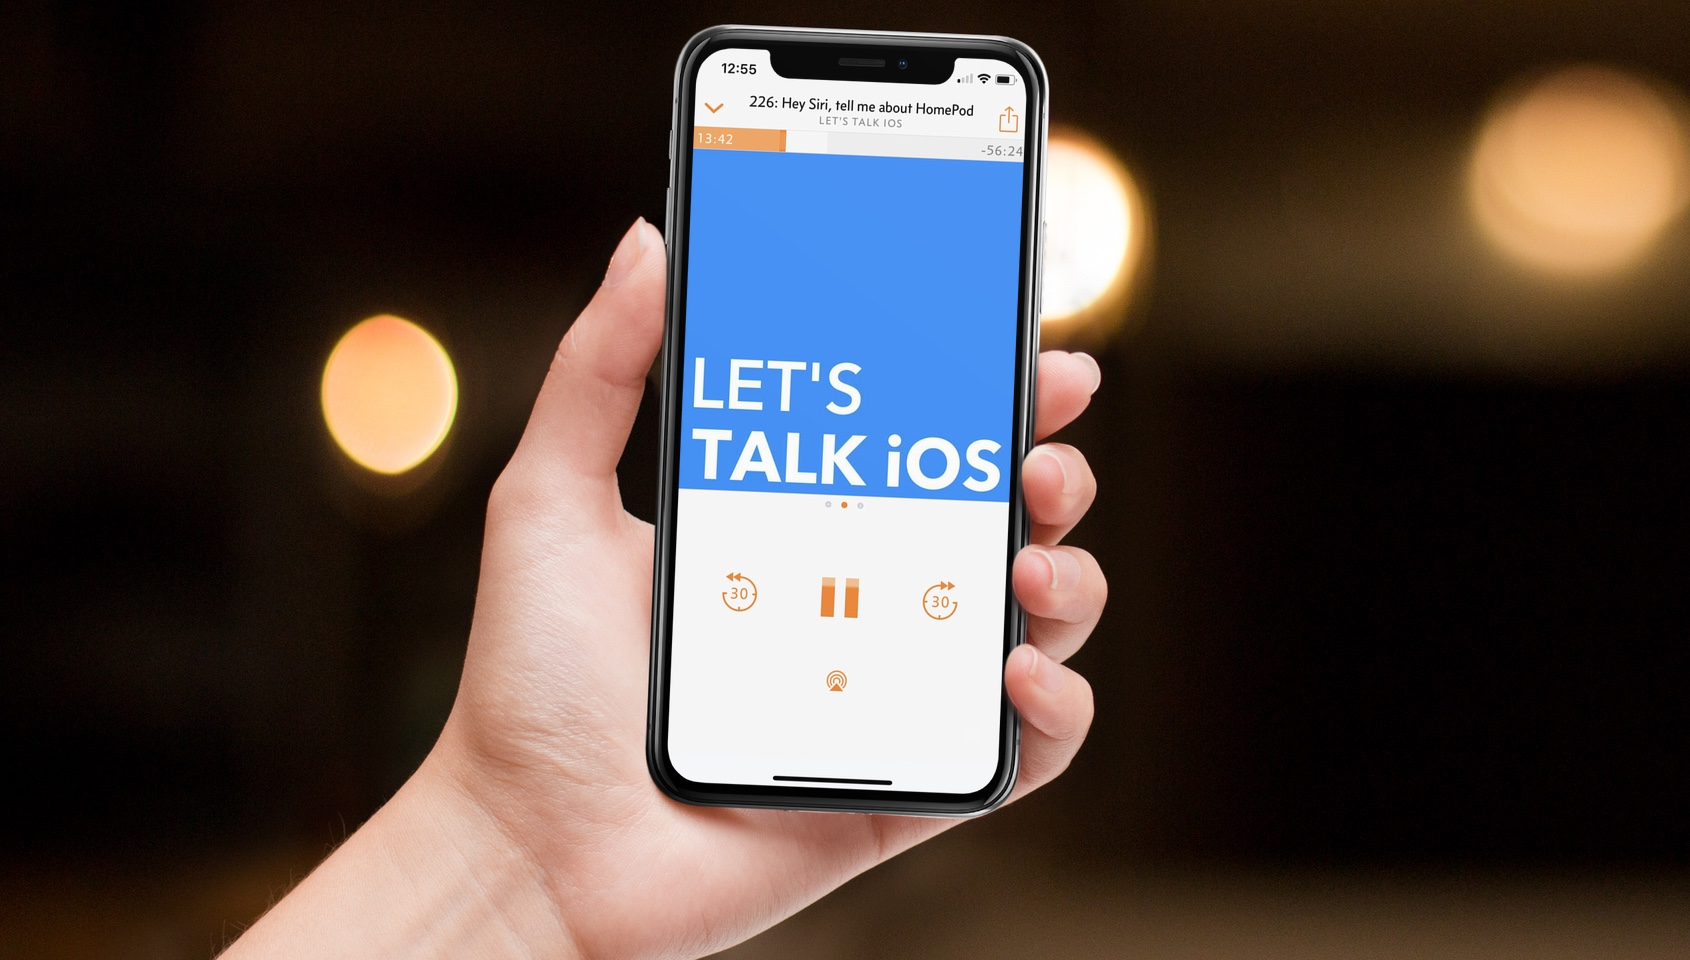 Apple Podcasts chapters - The Apple Podcasts app on iOS 12 finally features proper implementation of chapter markers that were in there before but left a lot to be desired